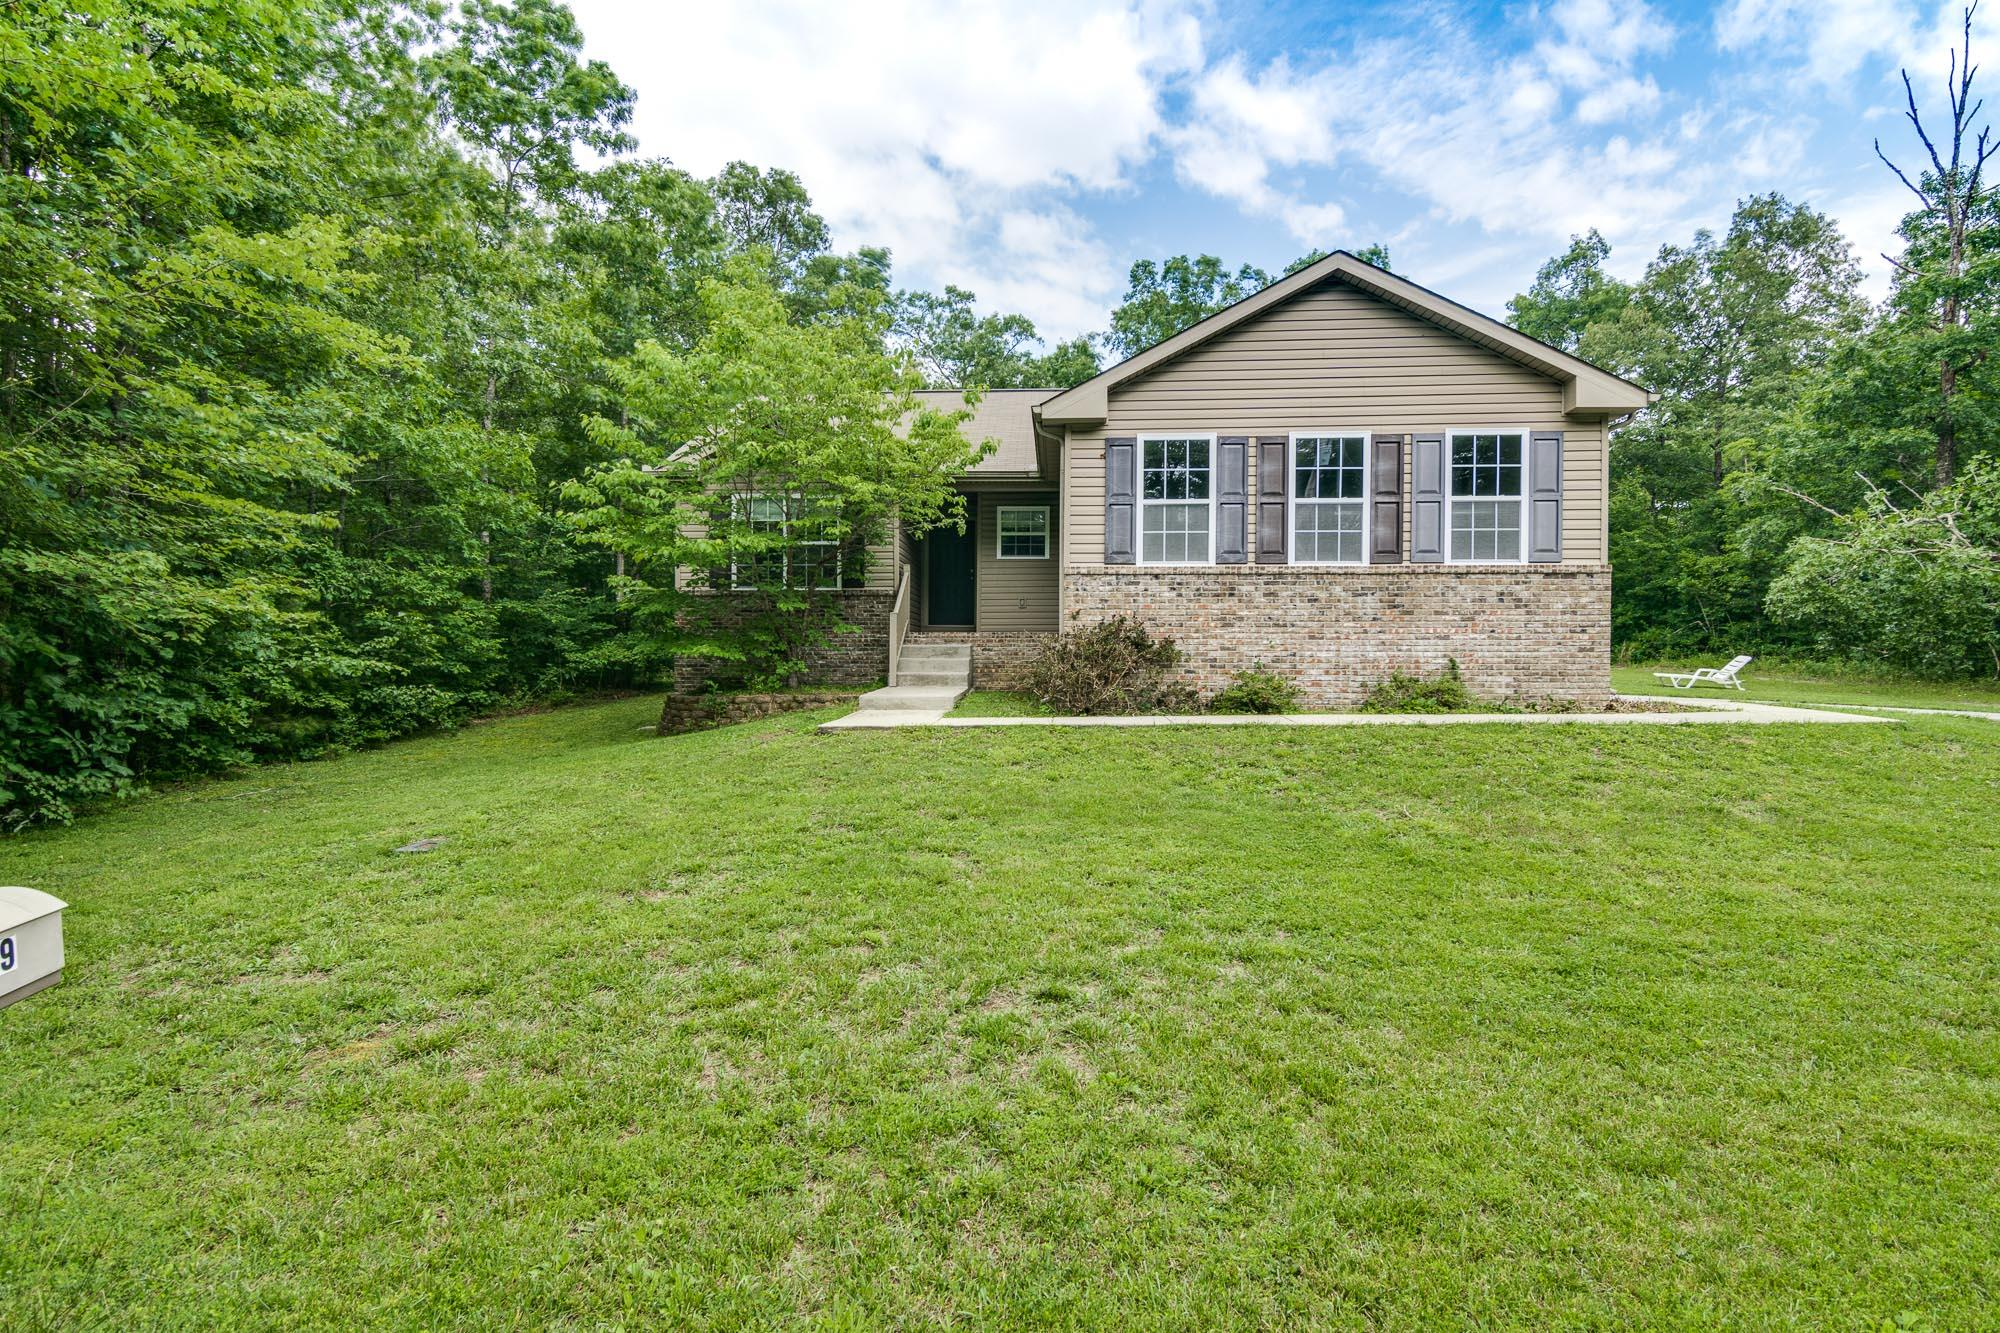 2019 Tres Cir, Crossville, TN 38572 - Crossville, TN real estate listing